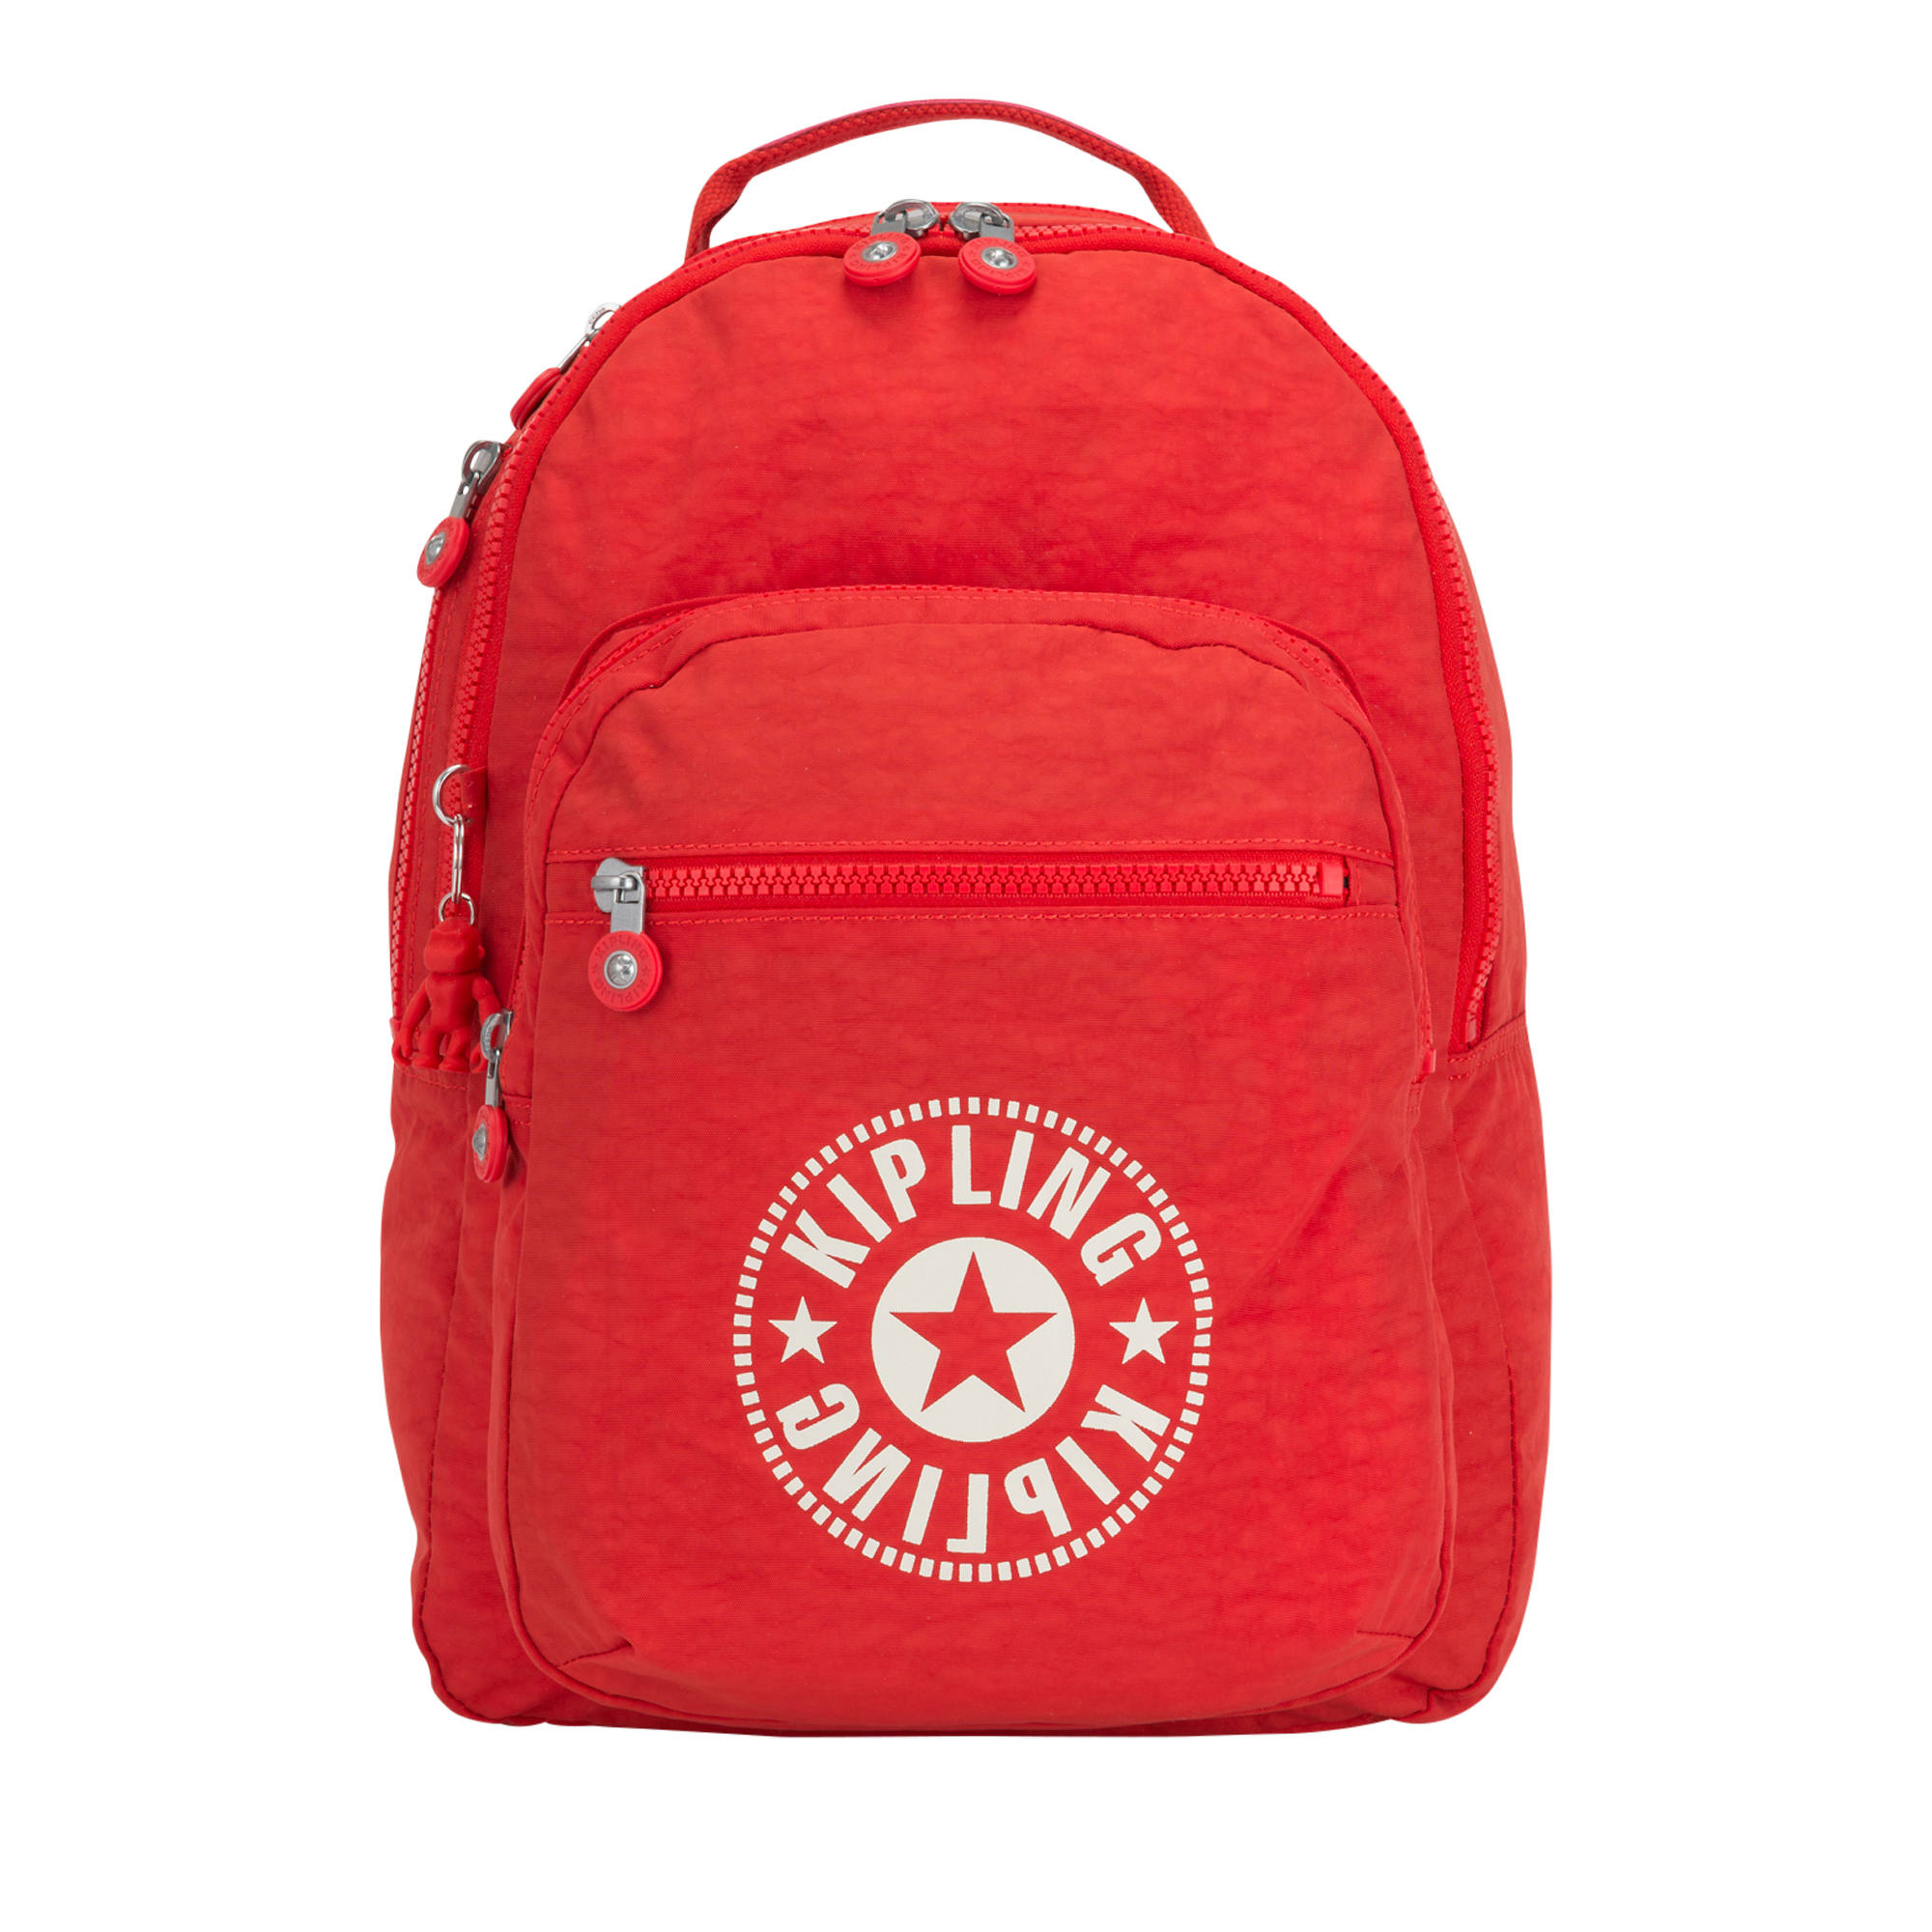 KIPLING BACK TO SCHOOL SPECIAL! ADDITIONAL 20% OFF BACKPACKS & HANDBAGS!